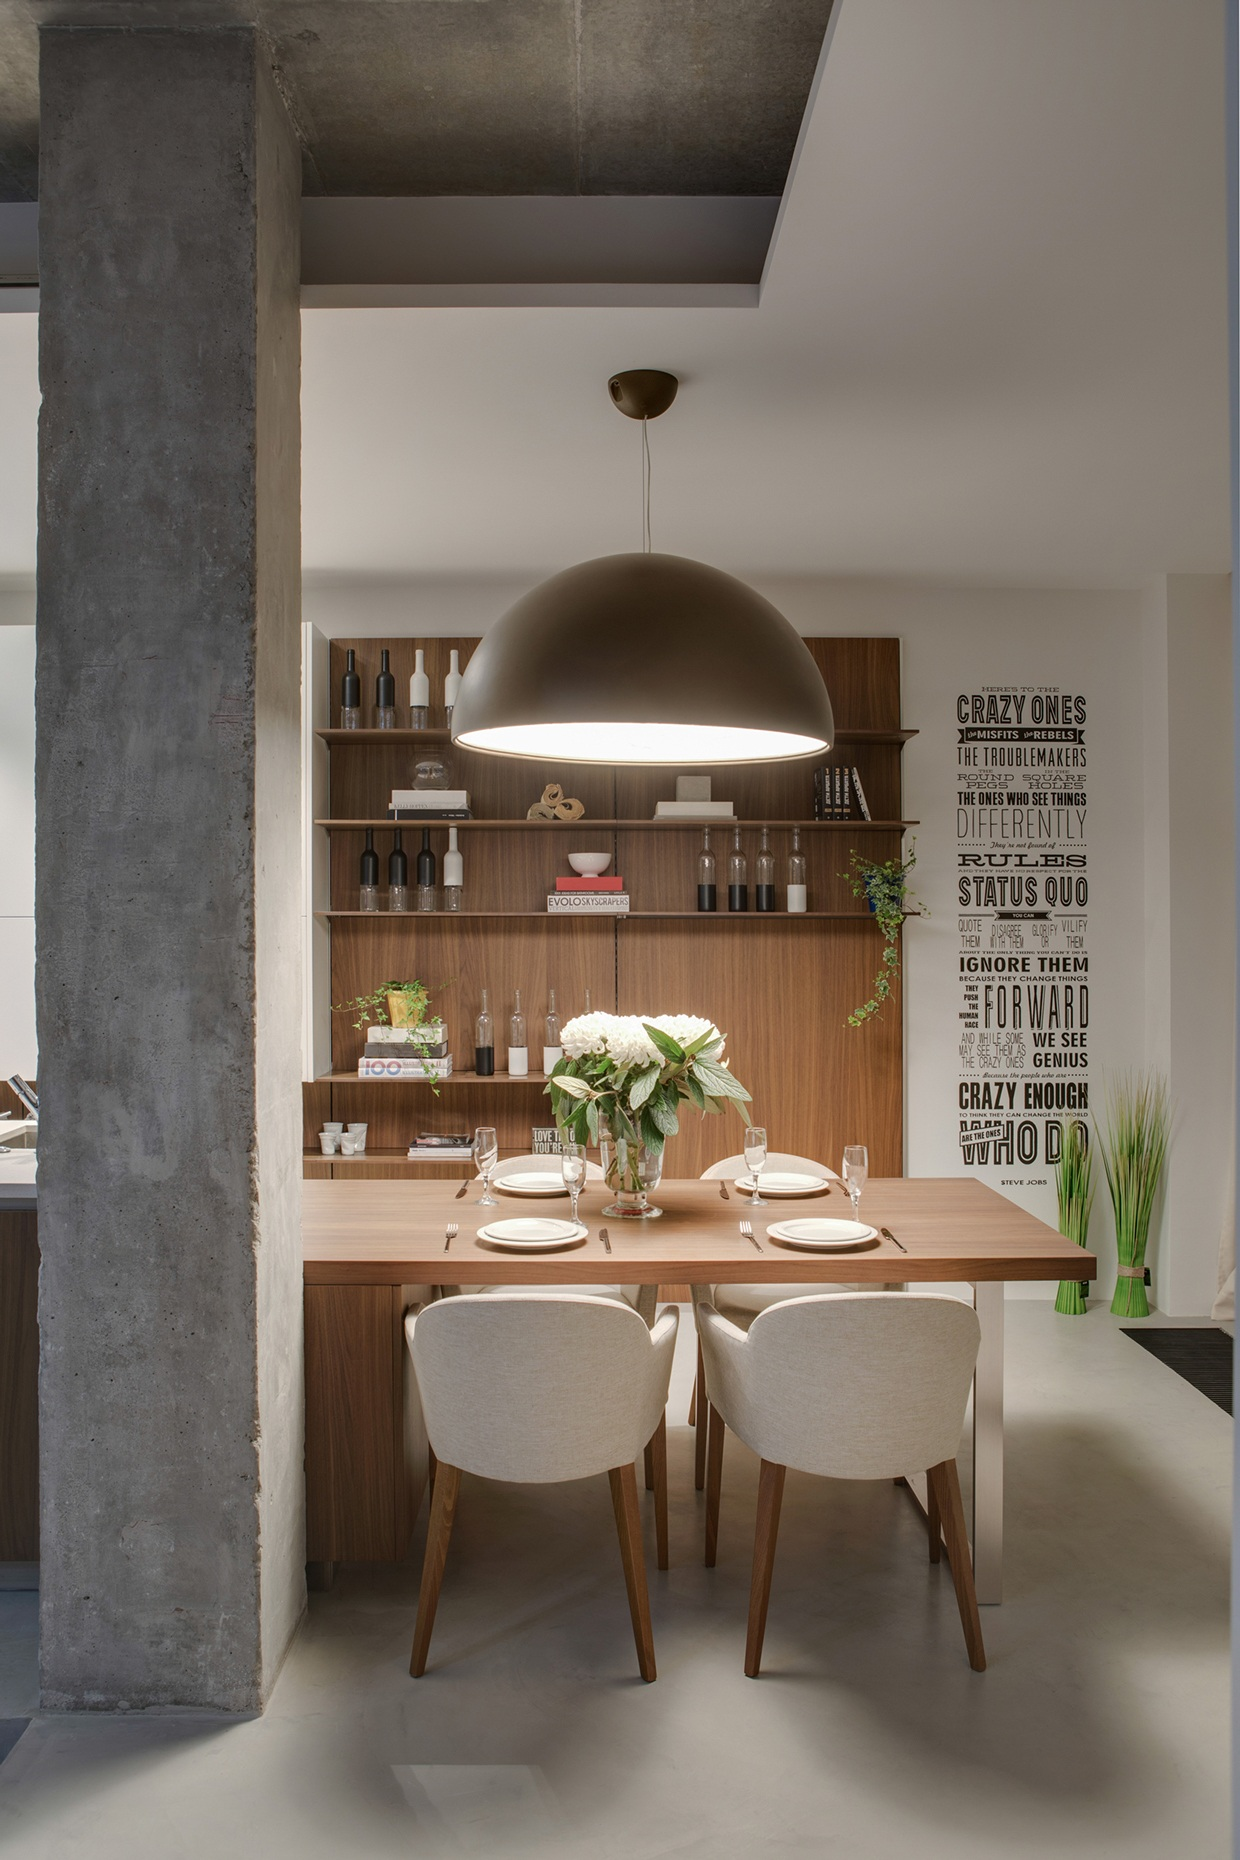 Designing A Super Stylish Party Pad: The Oh!dessa Apartment